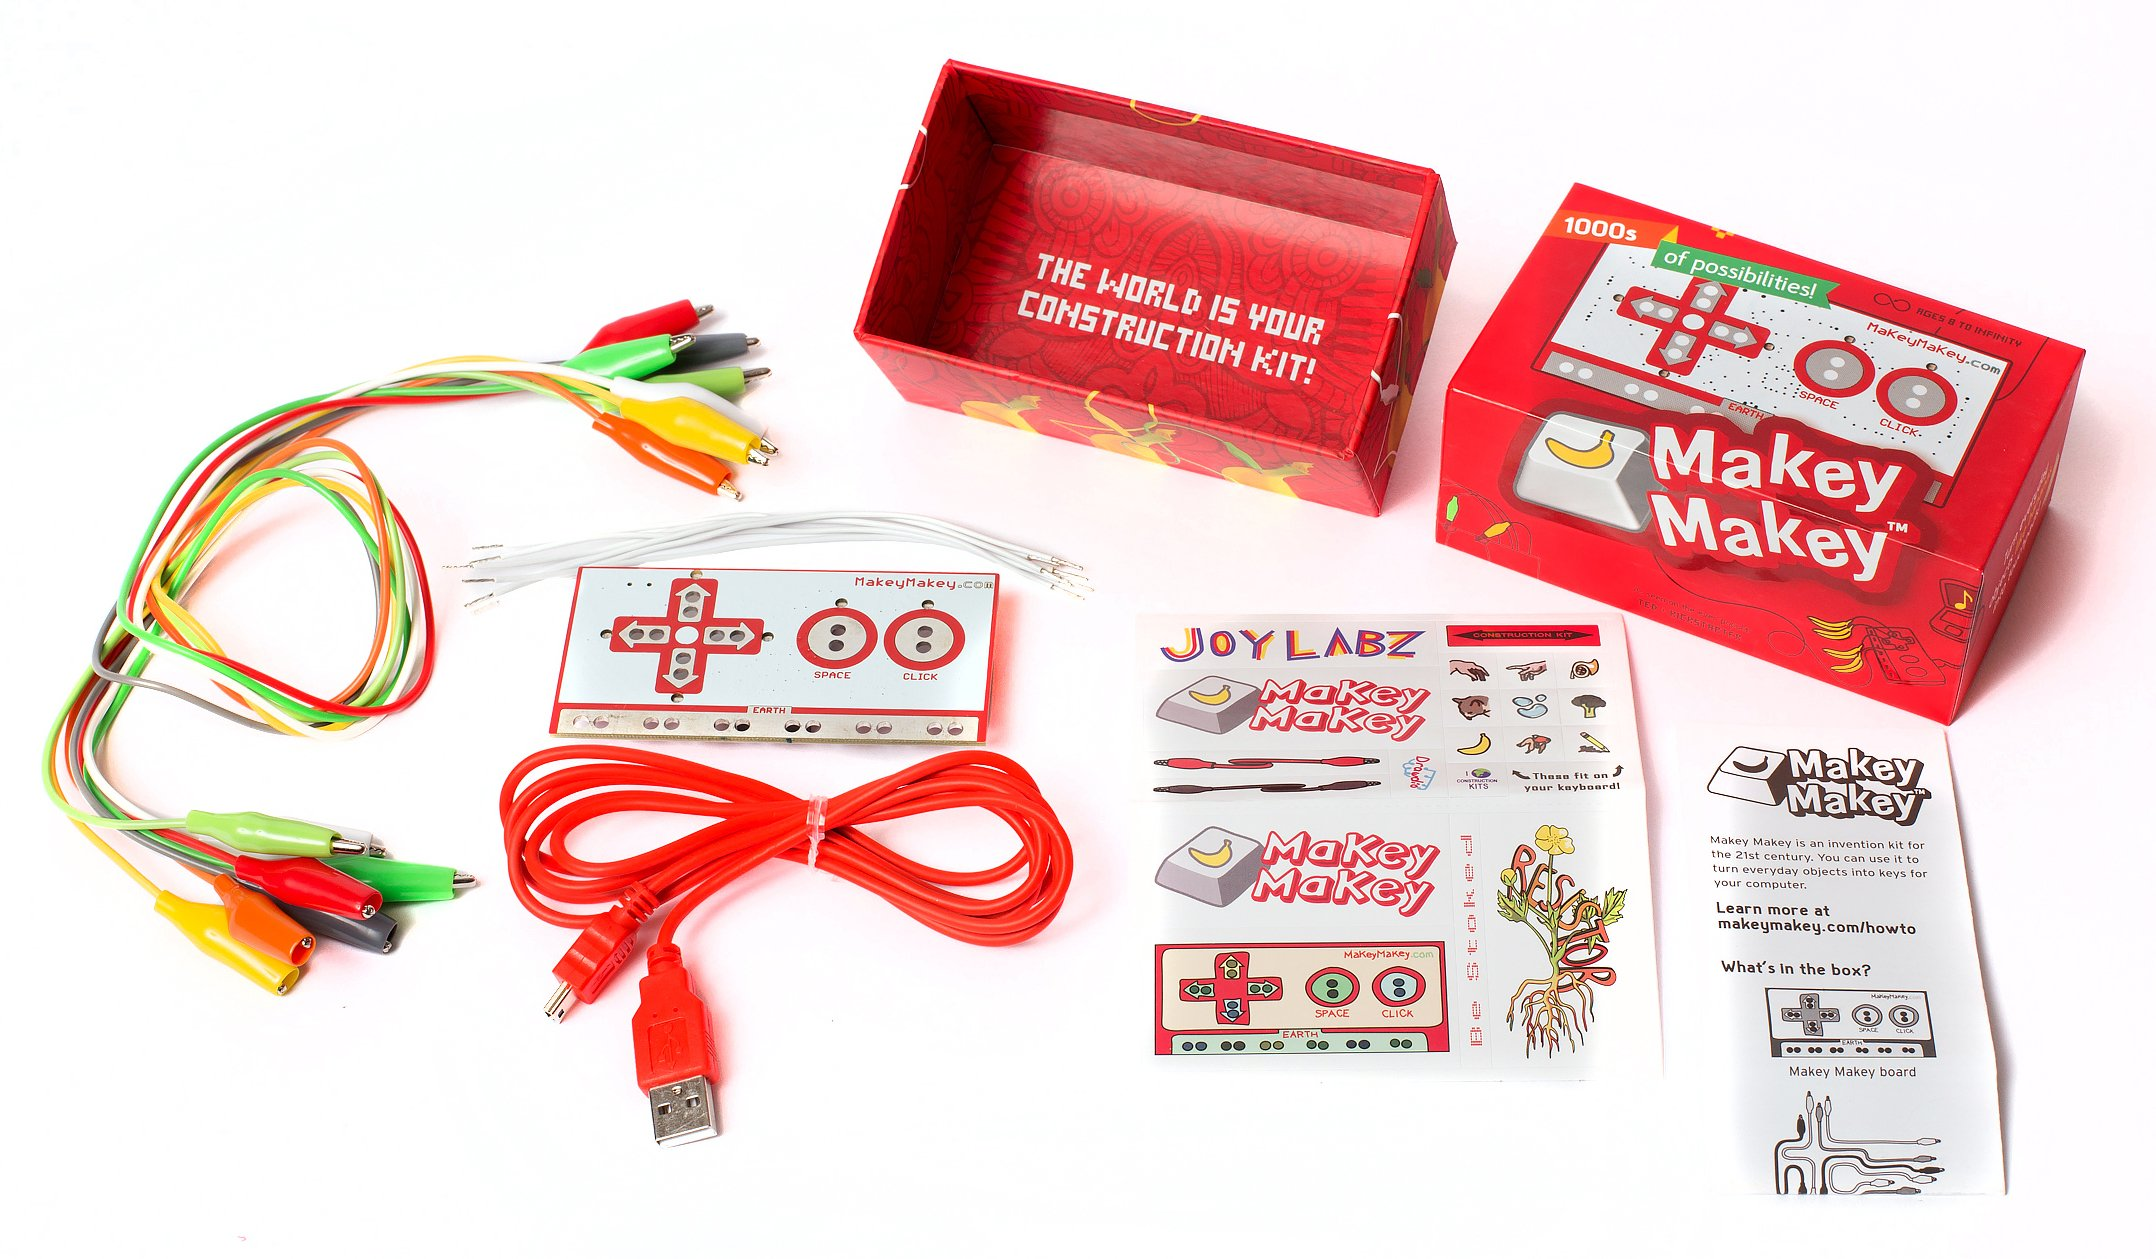 Makey Makey An Invention Kit For Everyone by JoyLabz